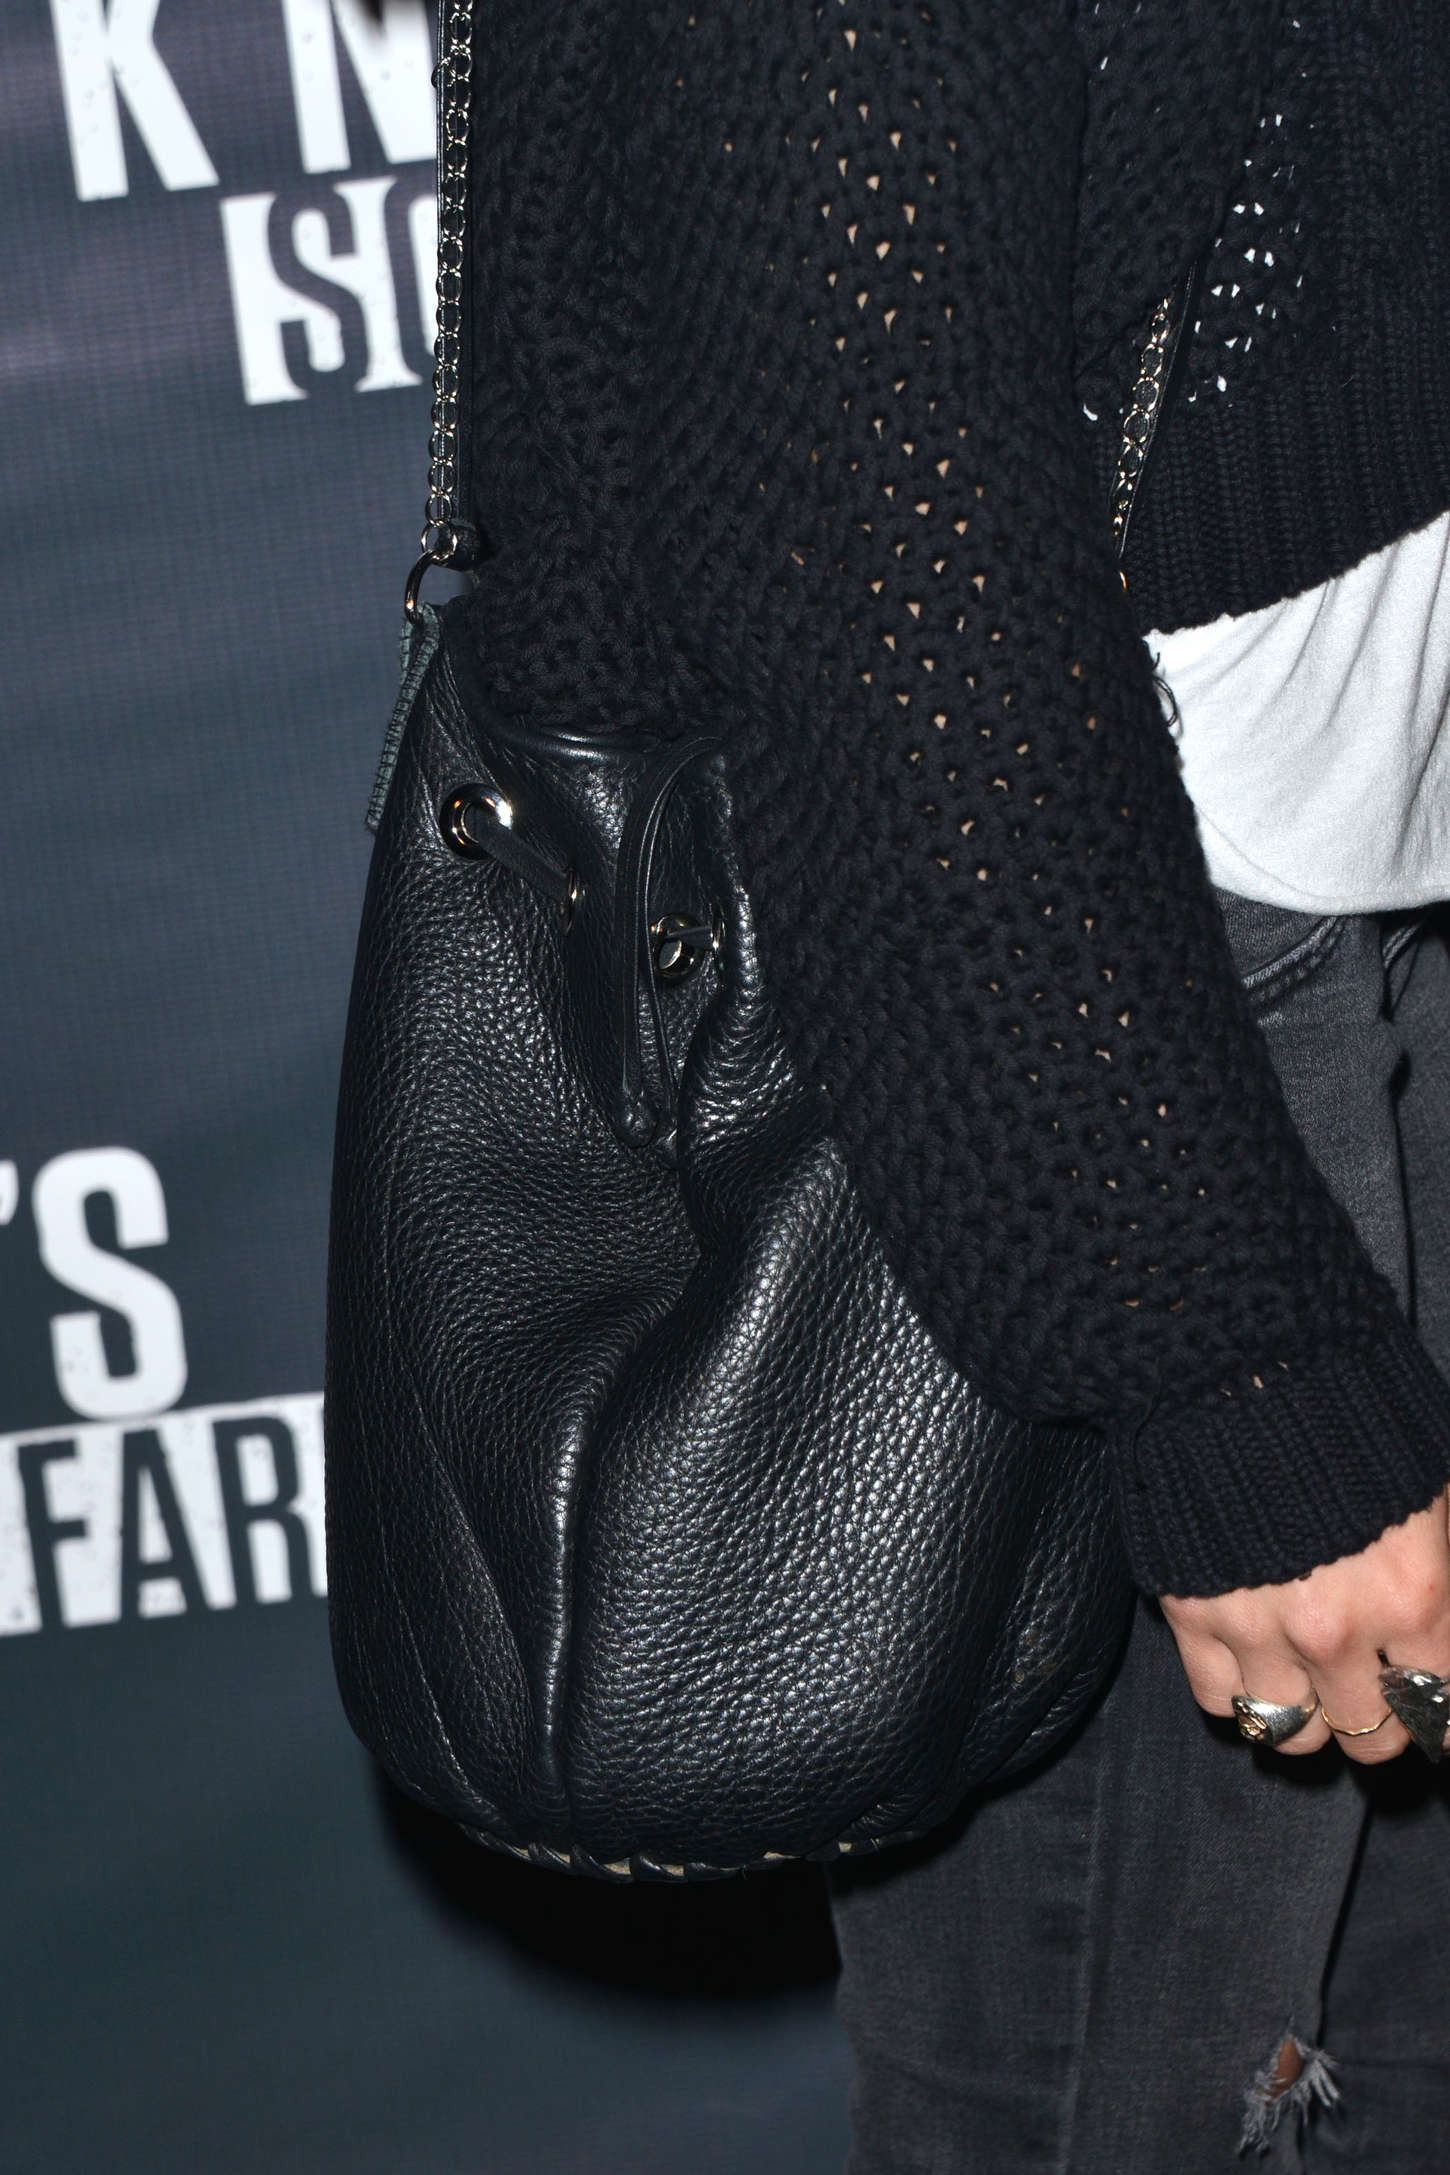 Shenae Grimes Knotts Scary Farm Opening Night in Buena Park